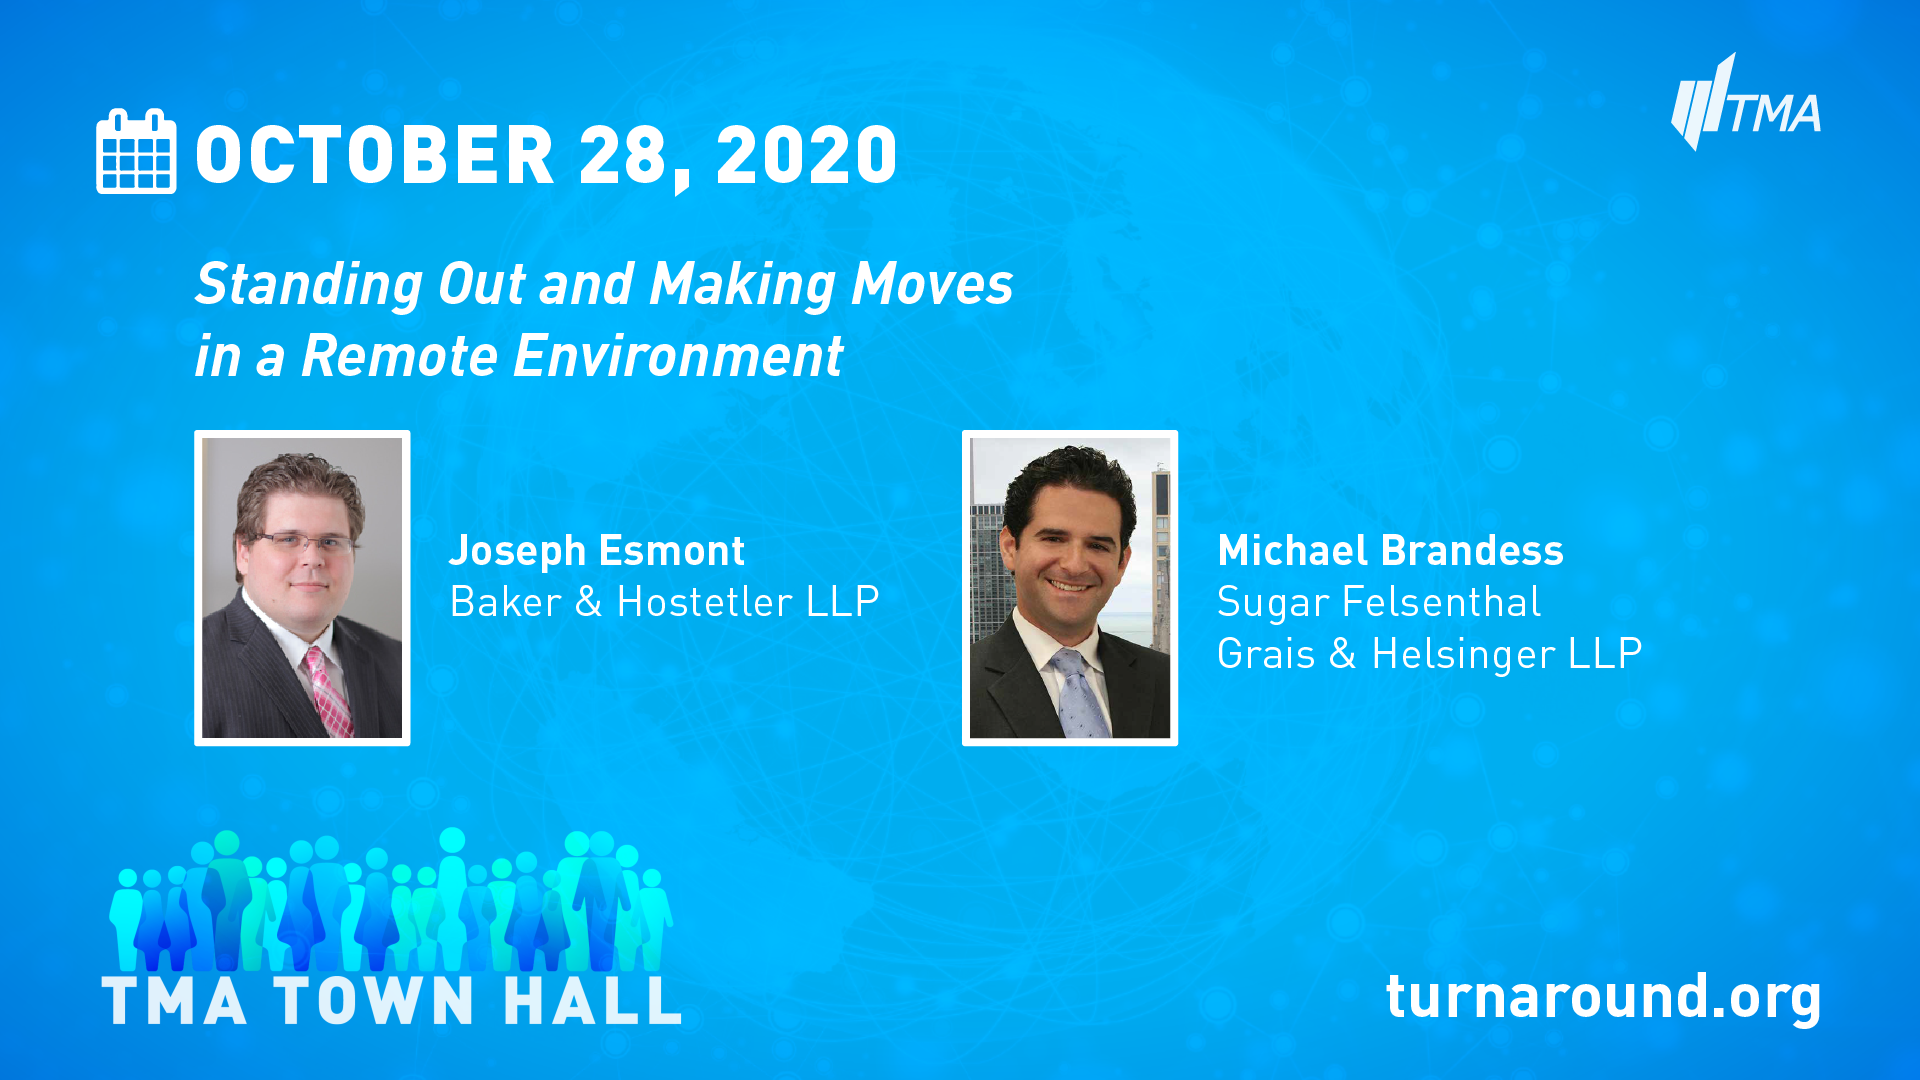 TMA Town Hall for October 28, 2020